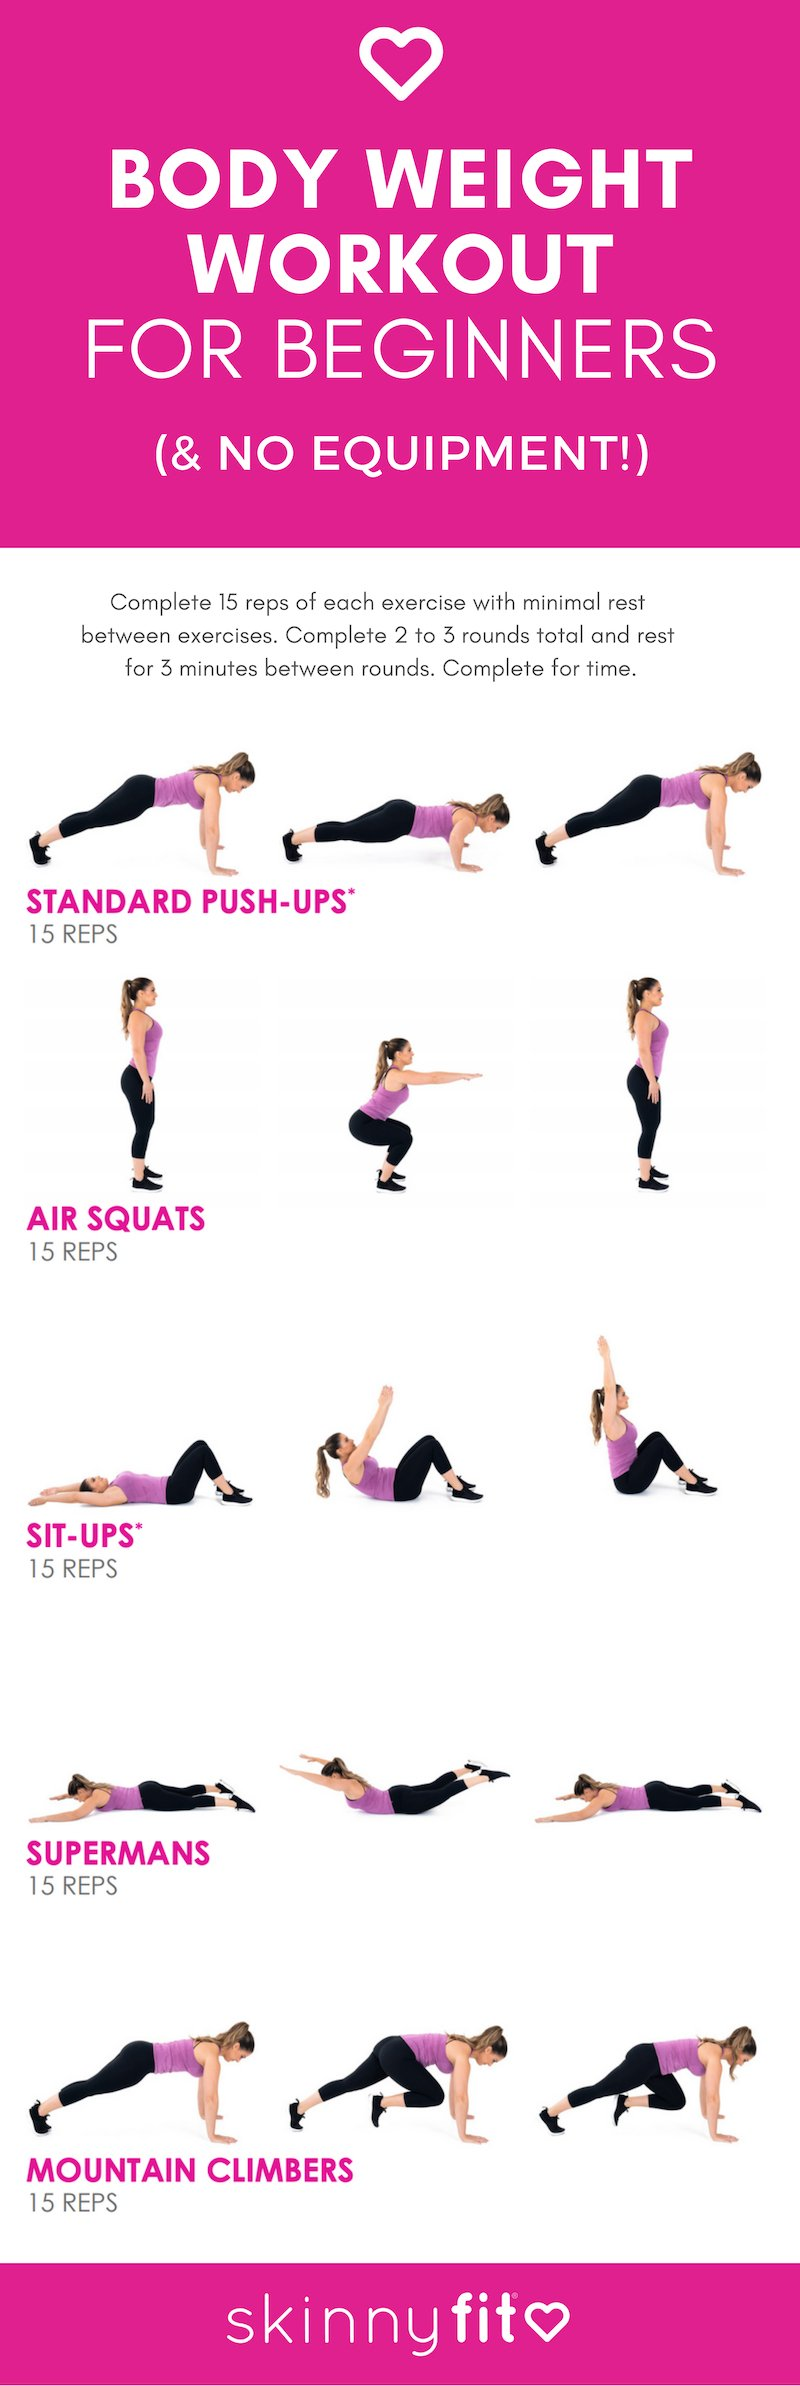 body weight workout for beginners